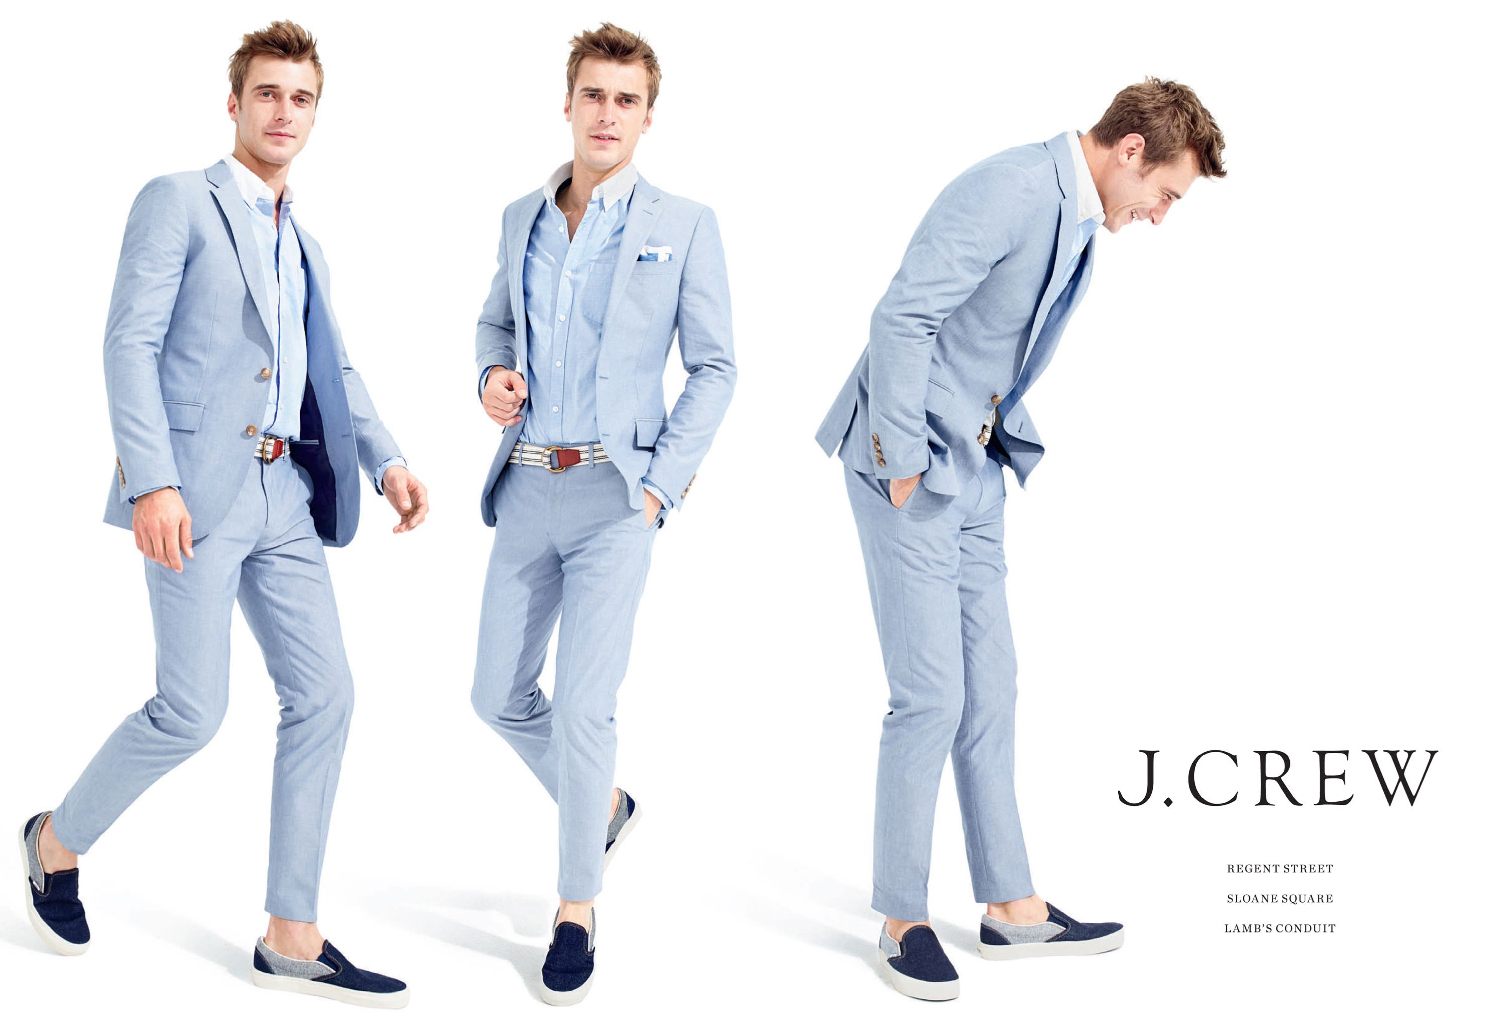 Clément Chabernaud Reunites with J.Crew for Summer 2015 Campaign ...